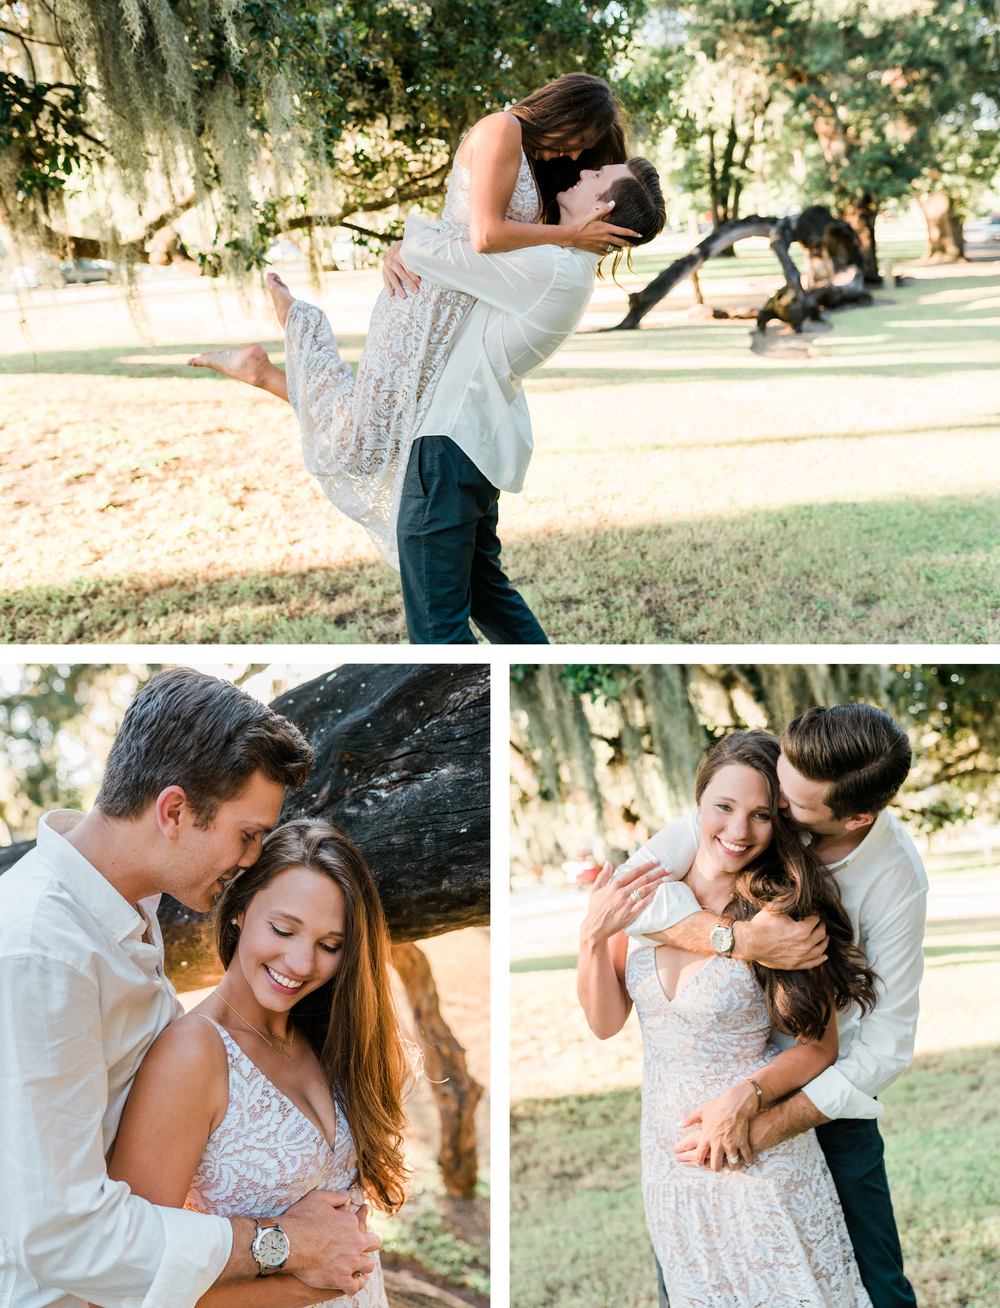 Evan Haley Engagement_Pawleys Island SC_Kristen Paige Photography_Gallery 3.png